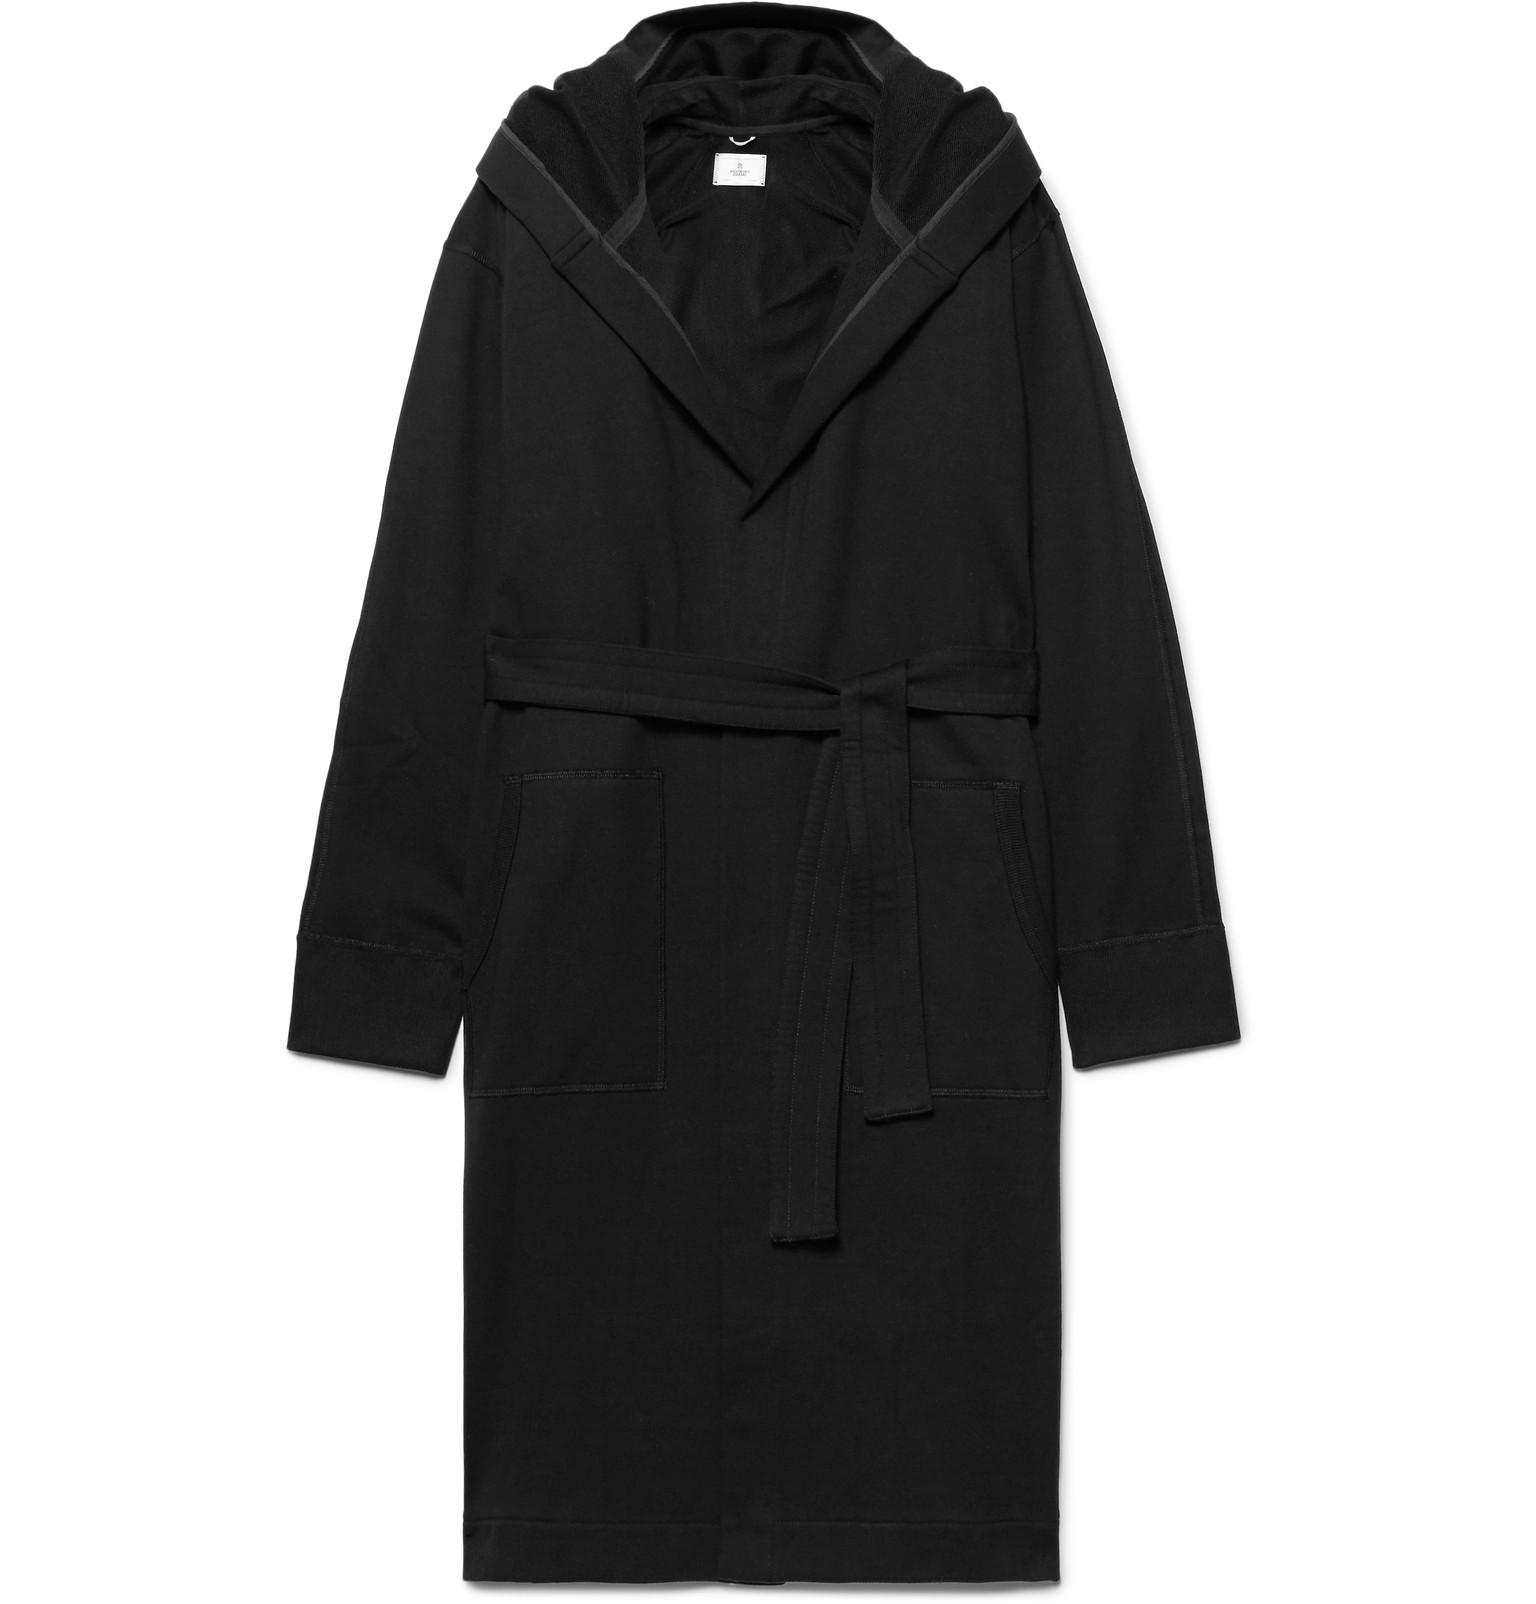 Lyst - Reigning Champ Loopback Cotton-jersey Hooded Robe in Black ...